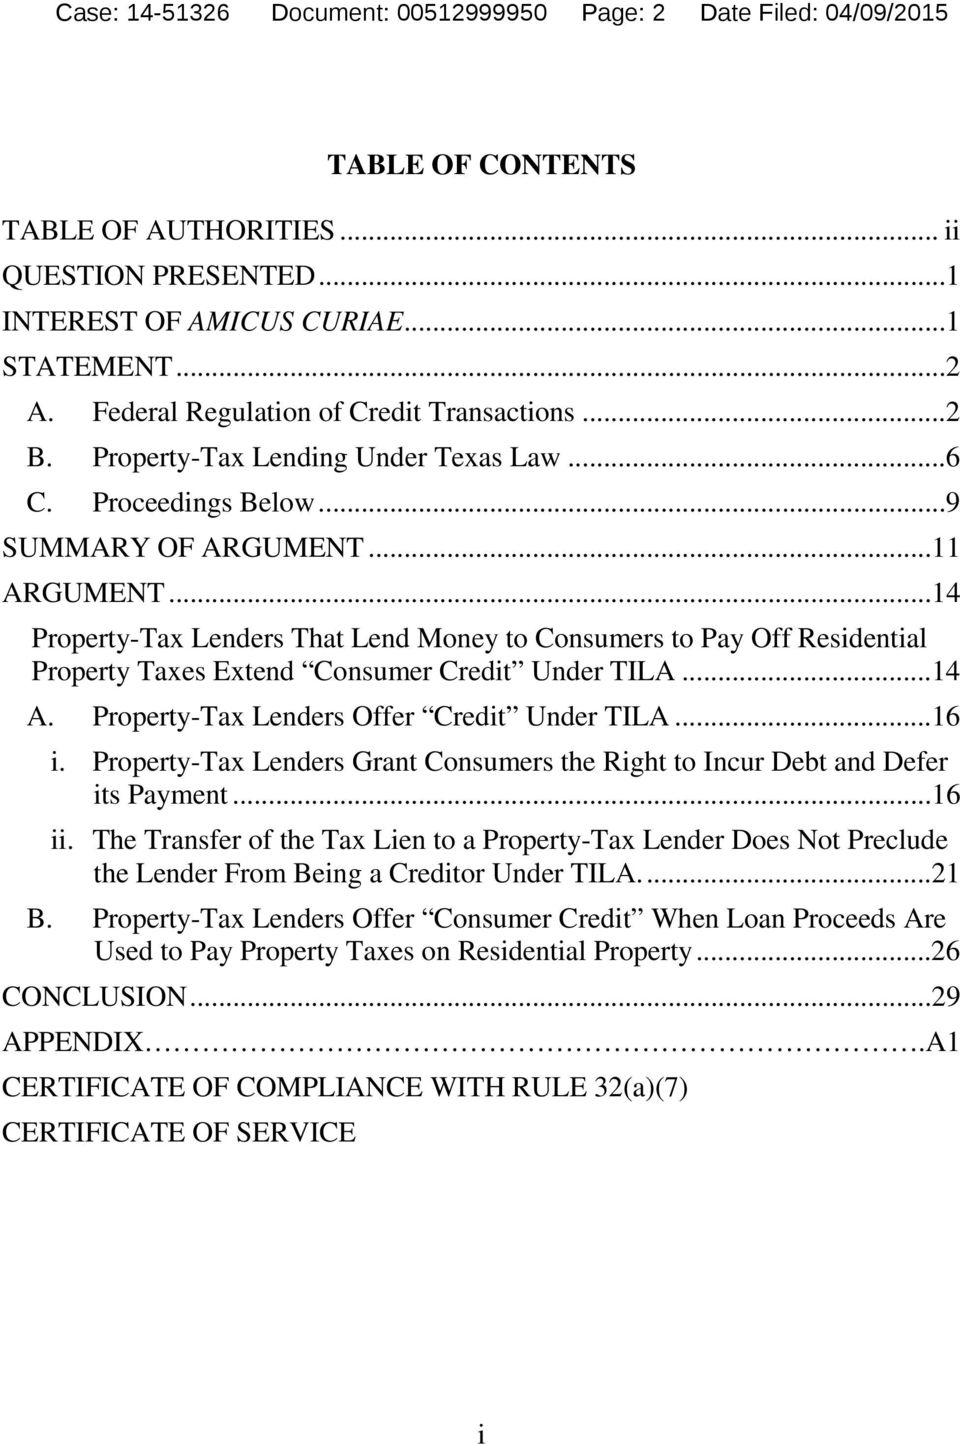 ..14 Property-Tax Lenders That Lend Money to Consumers to Pay Off Residential Property Taxes Extend Consumer Credit Under TILA...14 A. Property-Tax Lenders Offer Credit Under TILA...16 i.